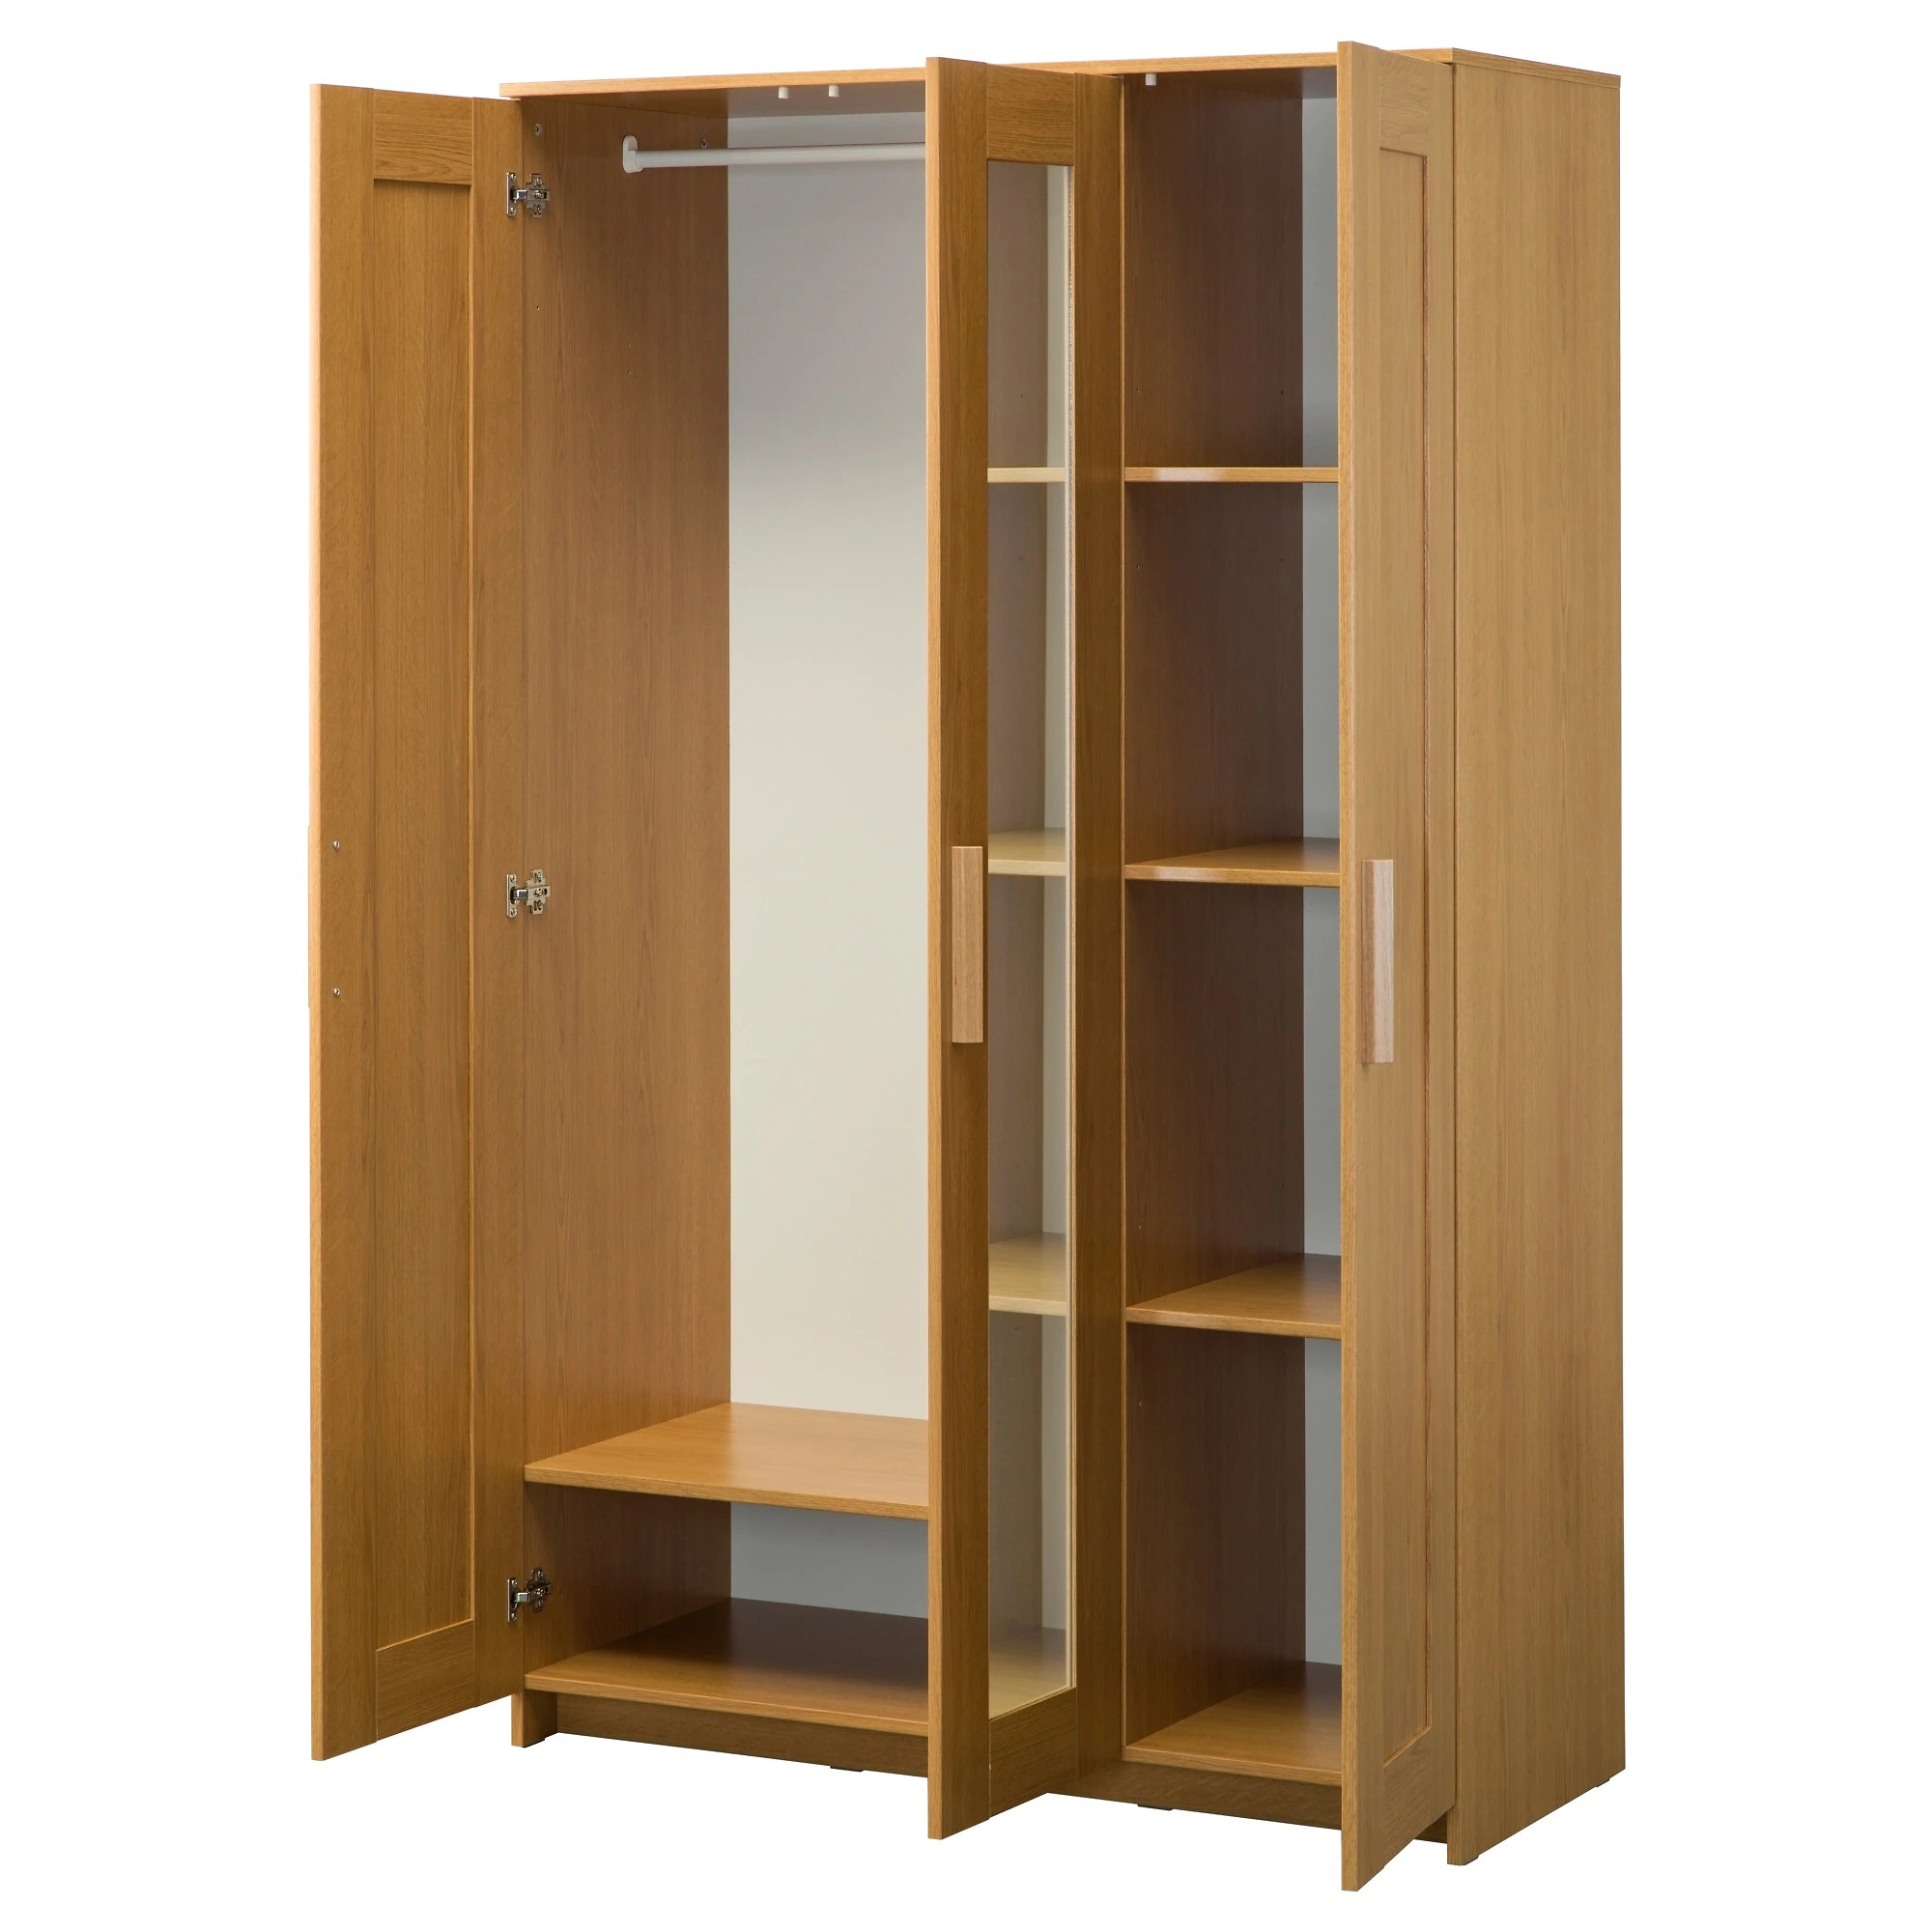 Le Meilleur Brimnes Wardrobe With 3 Doors Oak Effect Ikea Ce Mois Ci